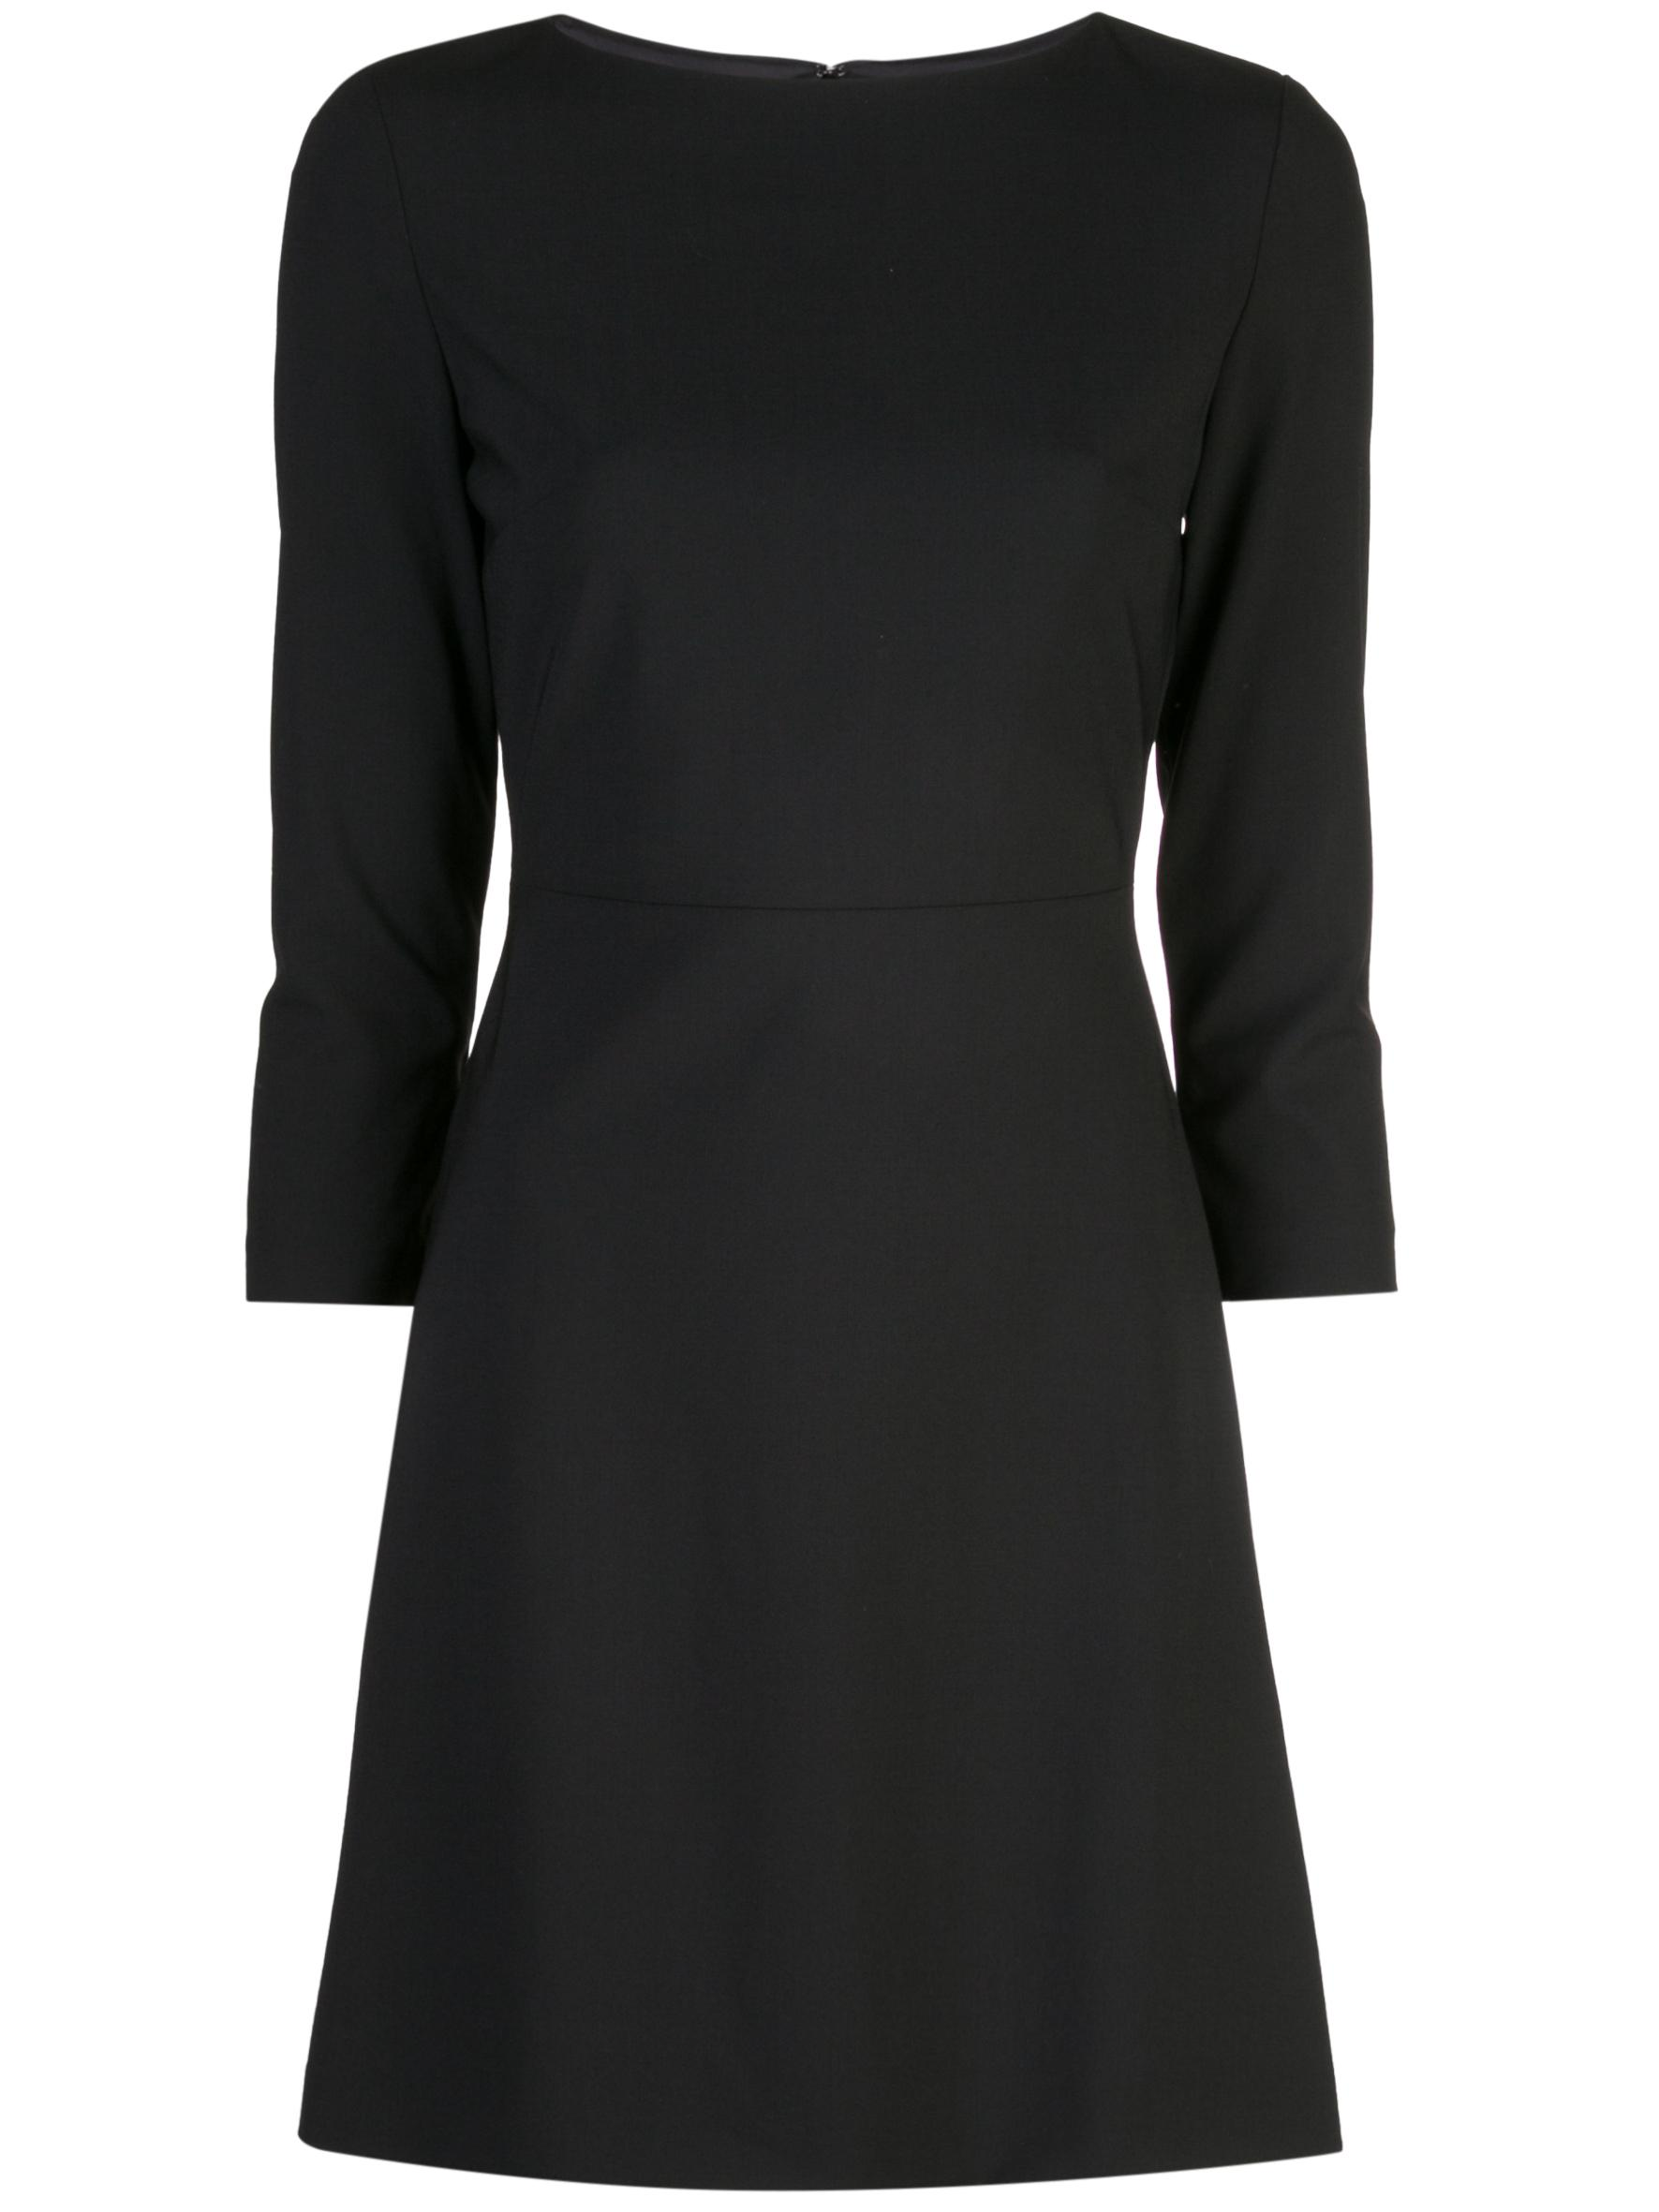 Kamillina Sleek 3/4 Sleeve A-Line Dress